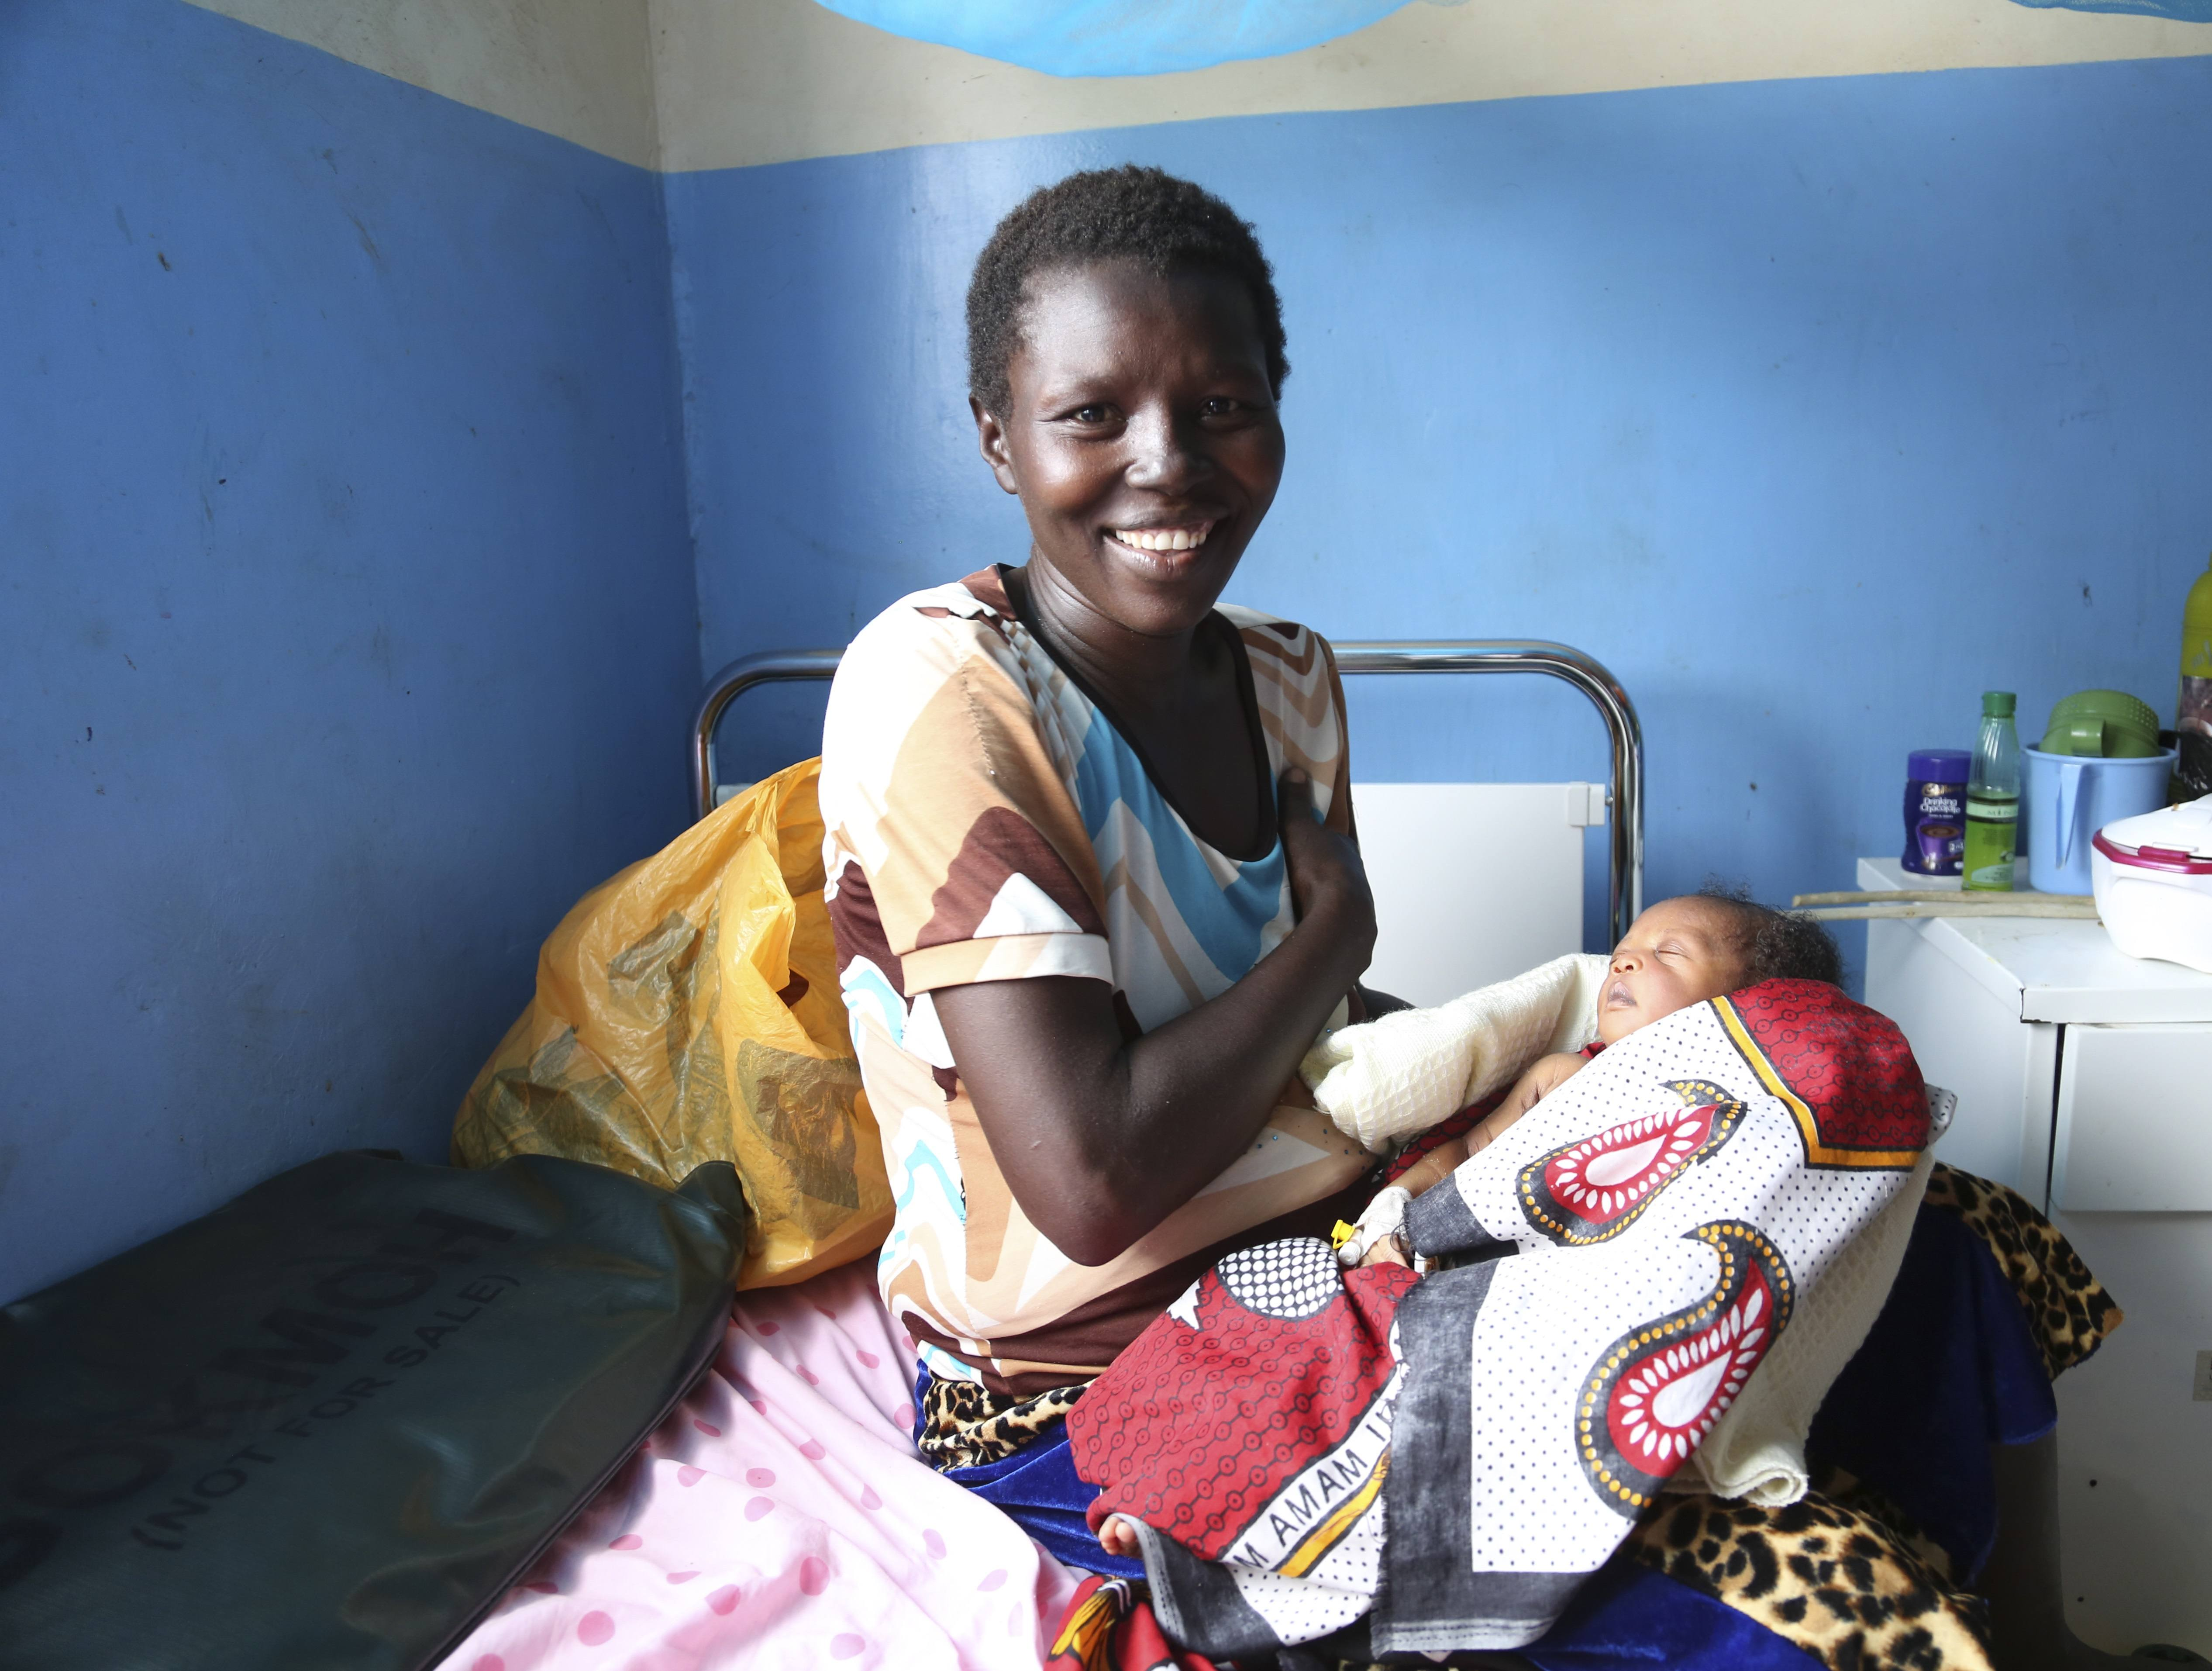 """Supporting maternal health in Lodwar, Kenya"" © 2017 DFID, used under a Creative Commons Attribution license 2.0 https://creativecommons.org/licenses/by/2.0/"